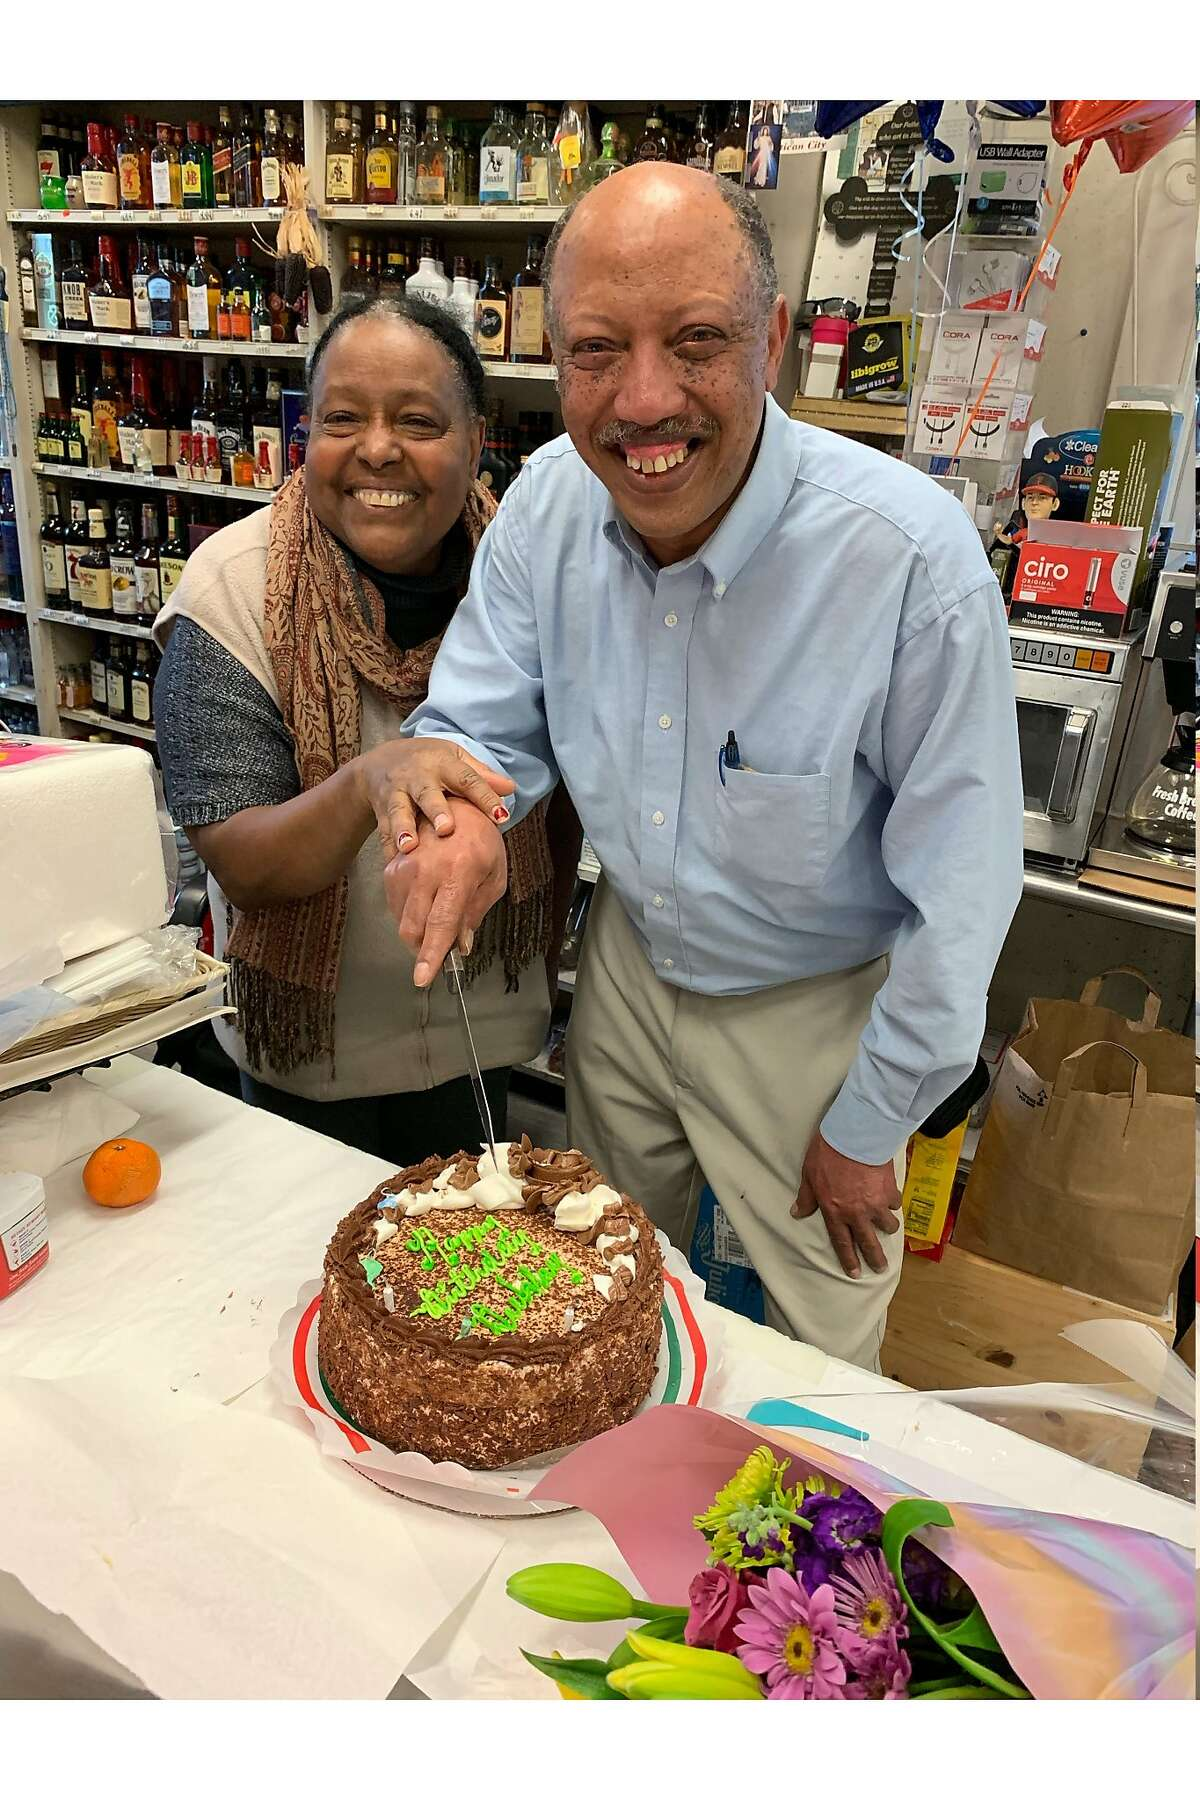 Petros Yohannes (right), owner of Franklin Market, in an undated photo. Yohannes was stabbed multiple times in an assault on June 2.